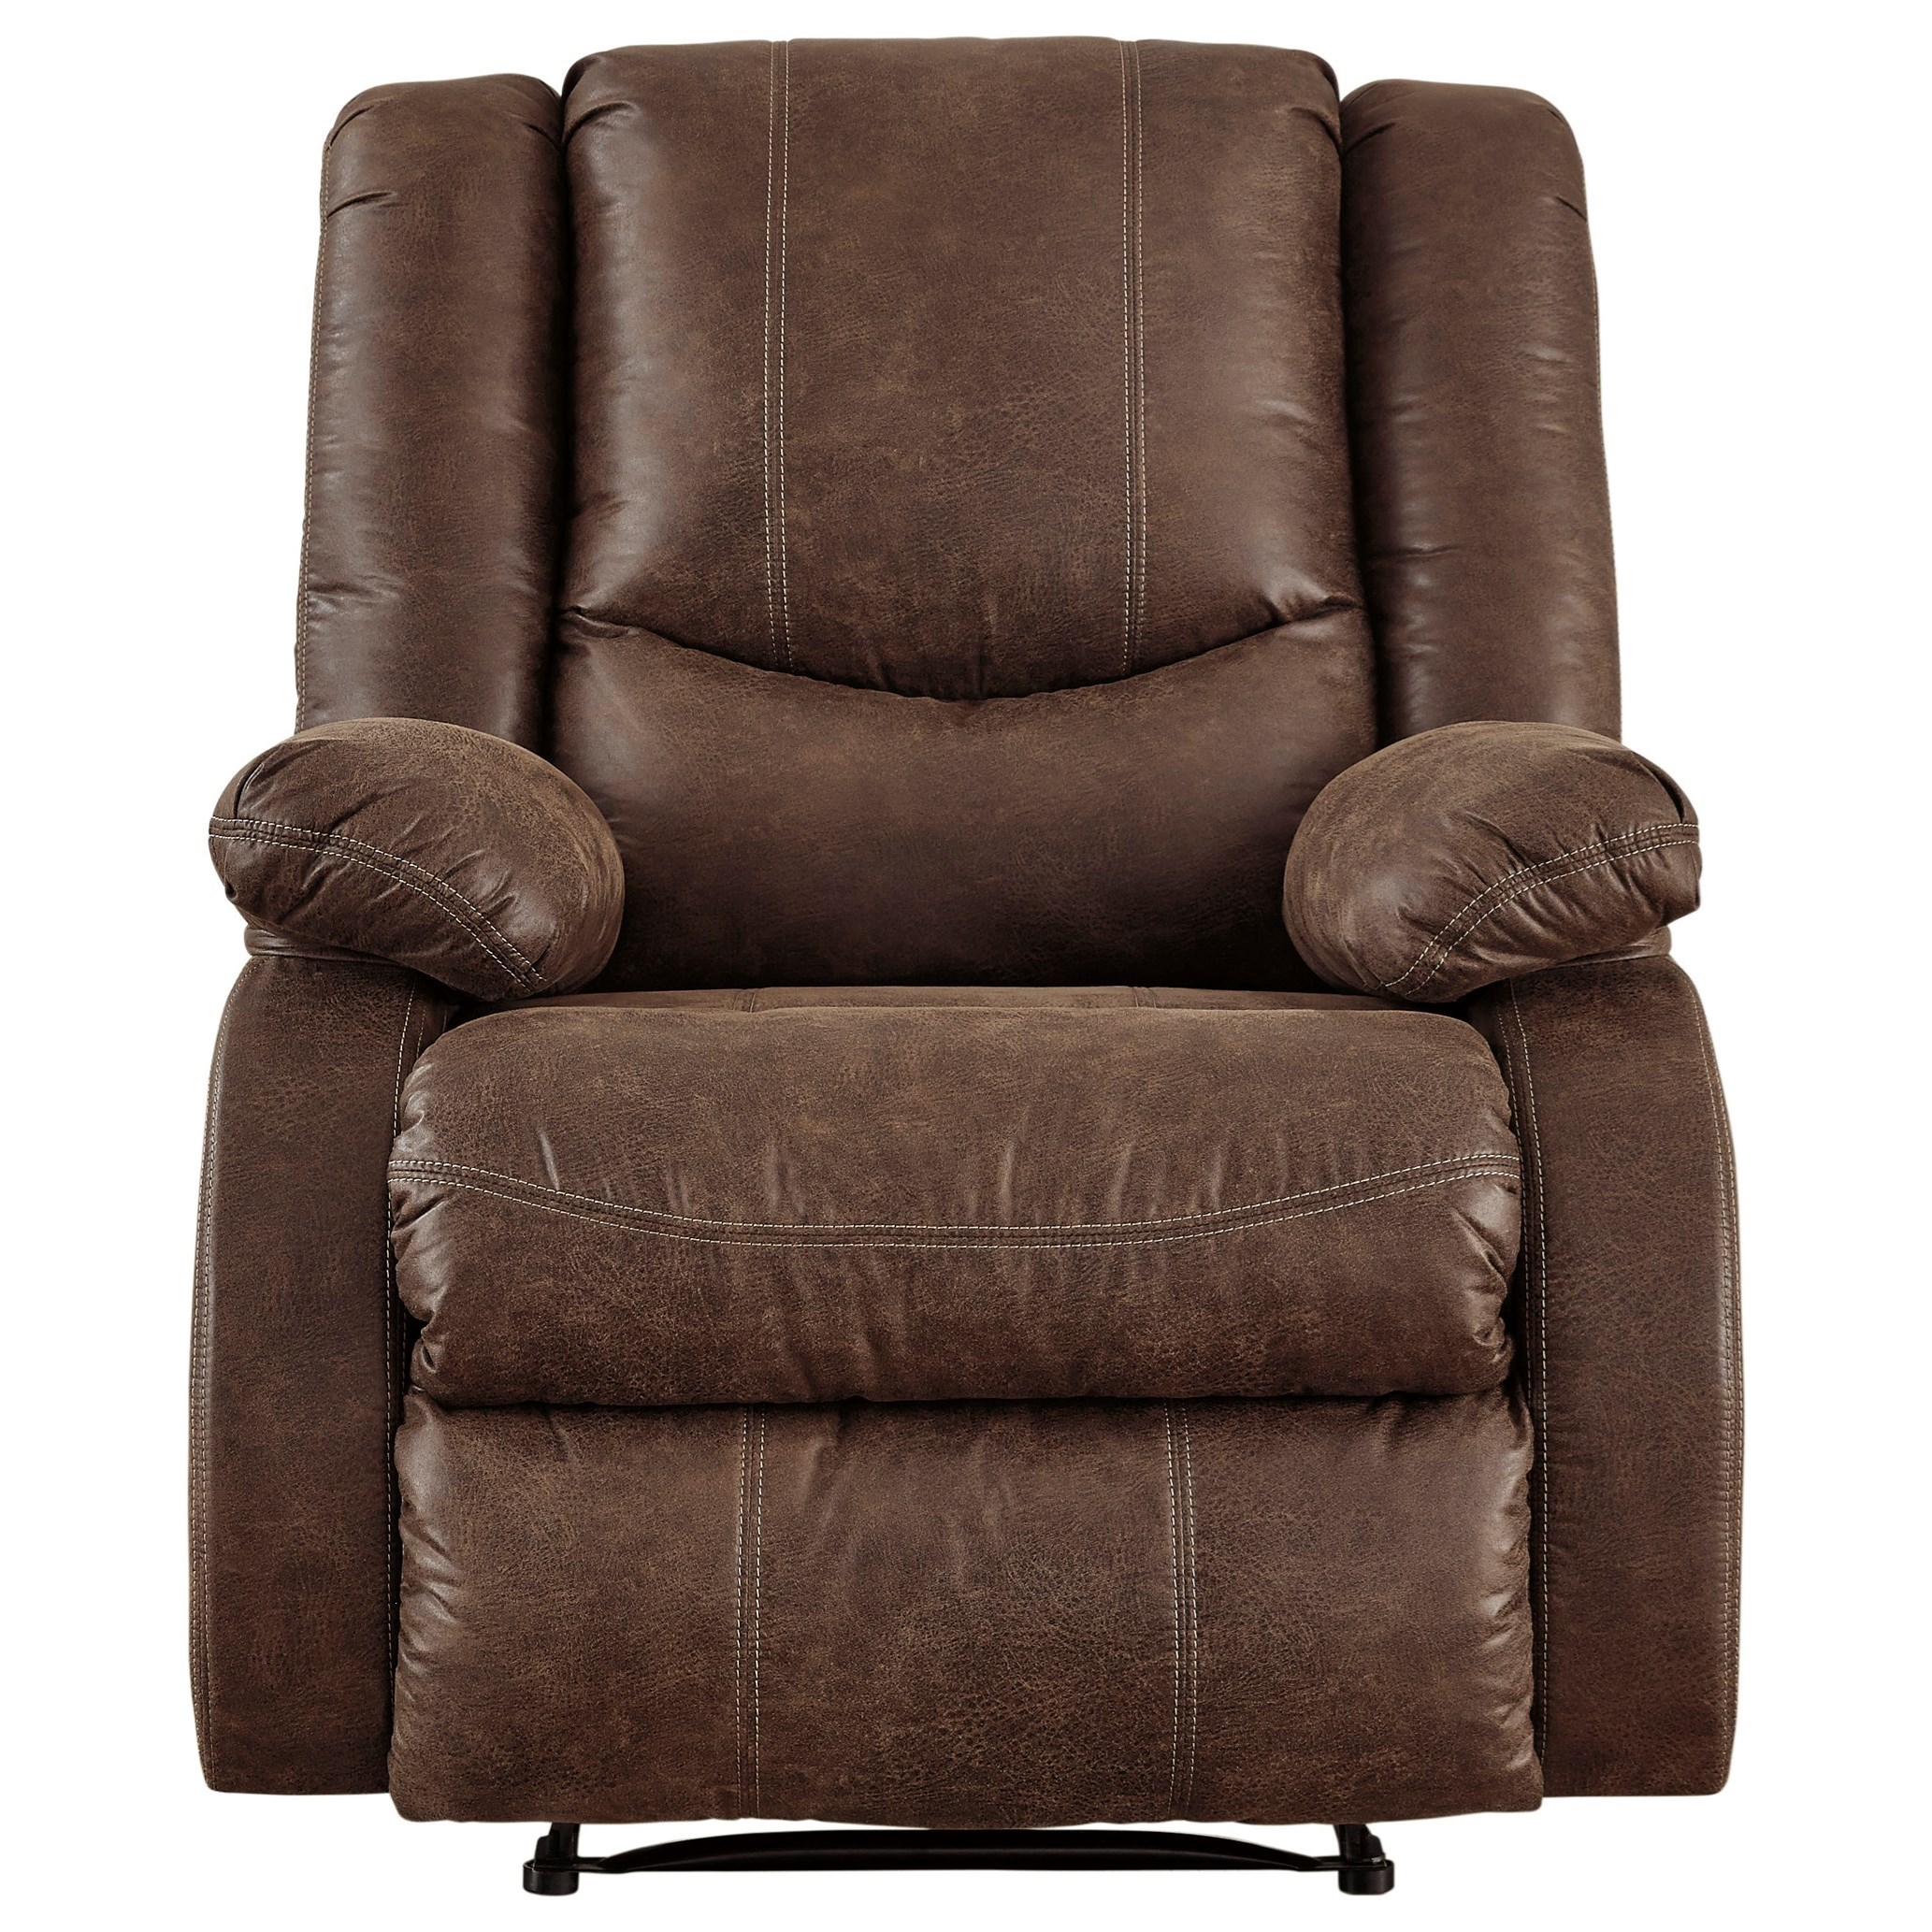 Bladewood Zero Wall Recliner by Signature Design by Ashley at Zak's Warehouse Clearance Center